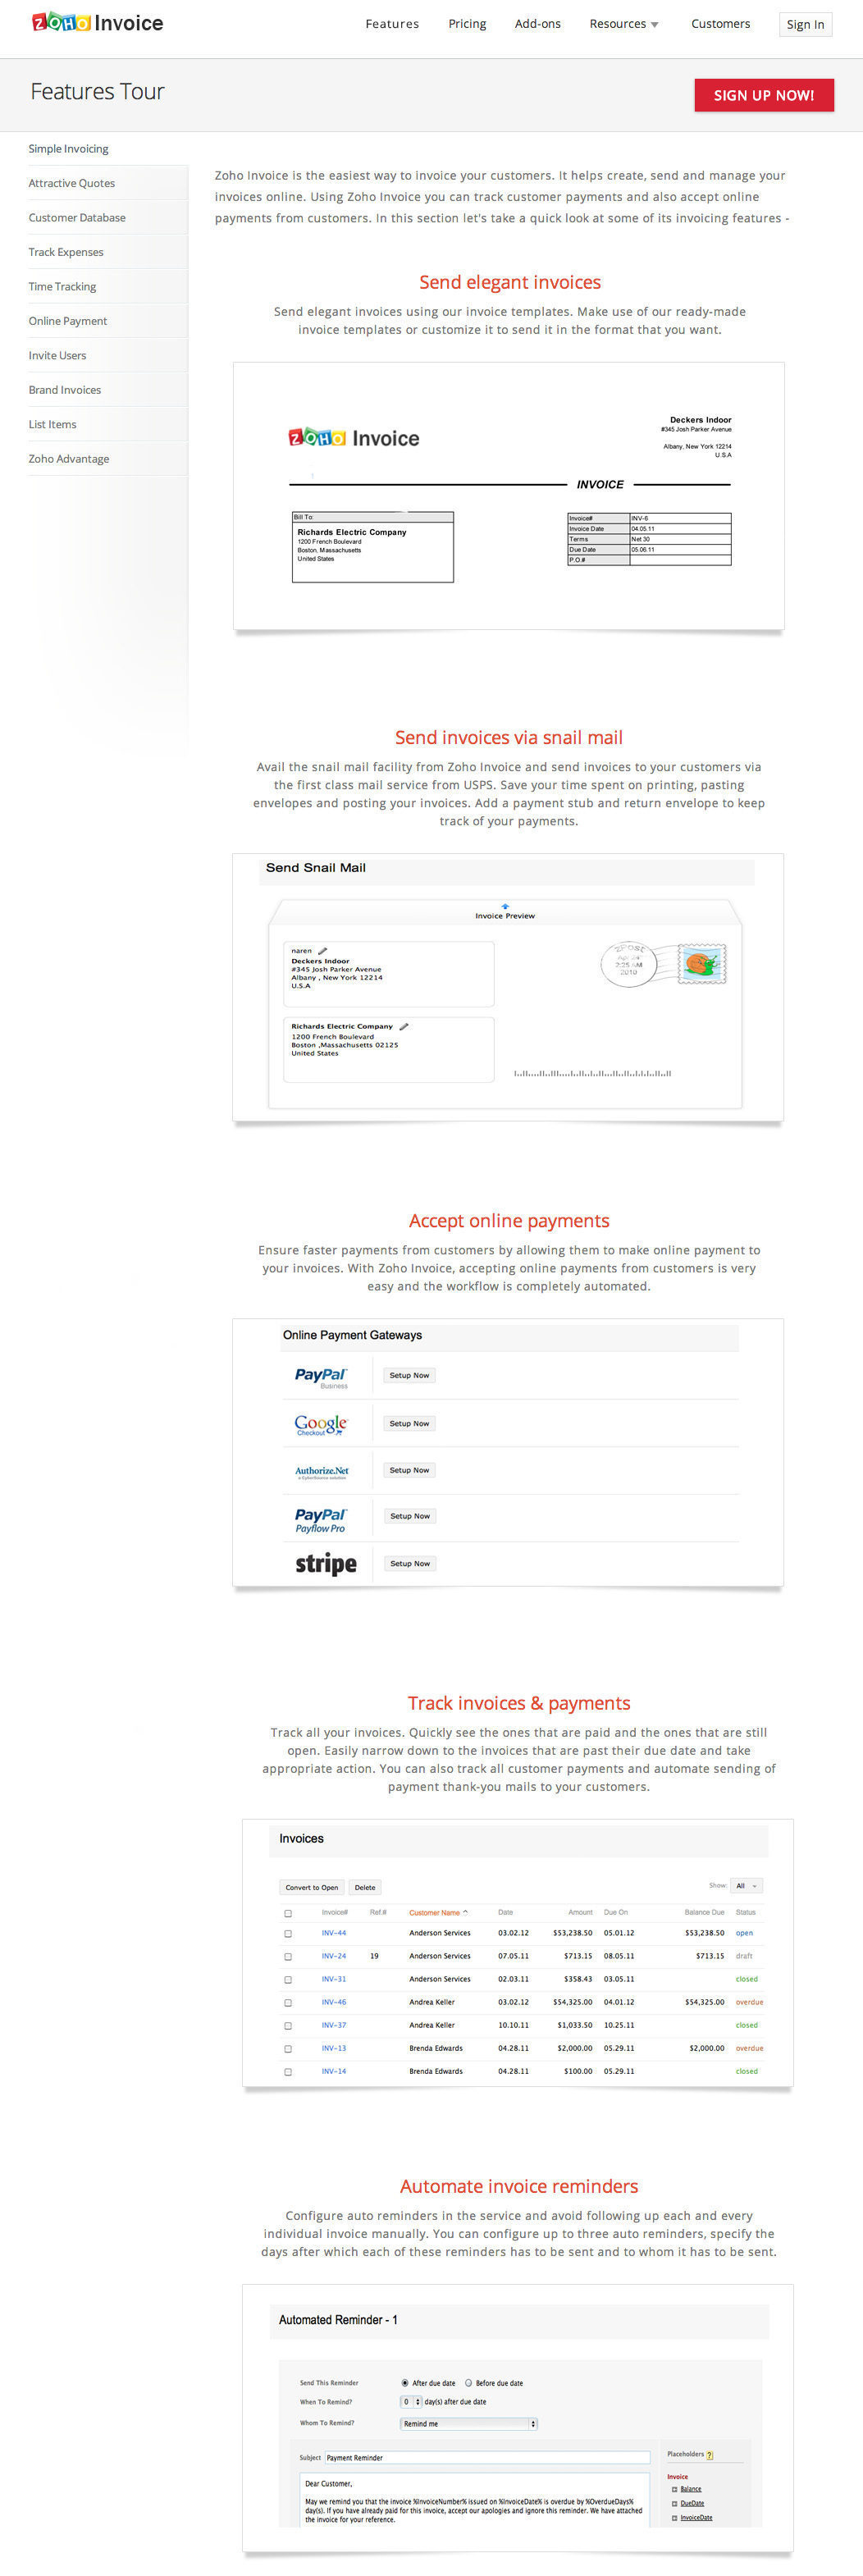 Carterusaus  Surprising Top  Complaints And Reviews About Zoho Invoice With Lovable Zoho Invoice Pricing Zoho Invoice  Simple Invoicing  With Appealing Invoice Reminder Template Also Grand Cherokee Invoice Price In Addition Invoice Paid Template And What Is Shipping Invoice As Well As How To Make A Good Invoice Additionally Invoice Templates For Microsoft Word From Consumeraffairscom With Carterusaus  Lovable Top  Complaints And Reviews About Zoho Invoice With Appealing Zoho Invoice Pricing Zoho Invoice  Simple Invoicing  And Surprising Invoice Reminder Template Also Grand Cherokee Invoice Price In Addition Invoice Paid Template From Consumeraffairscom